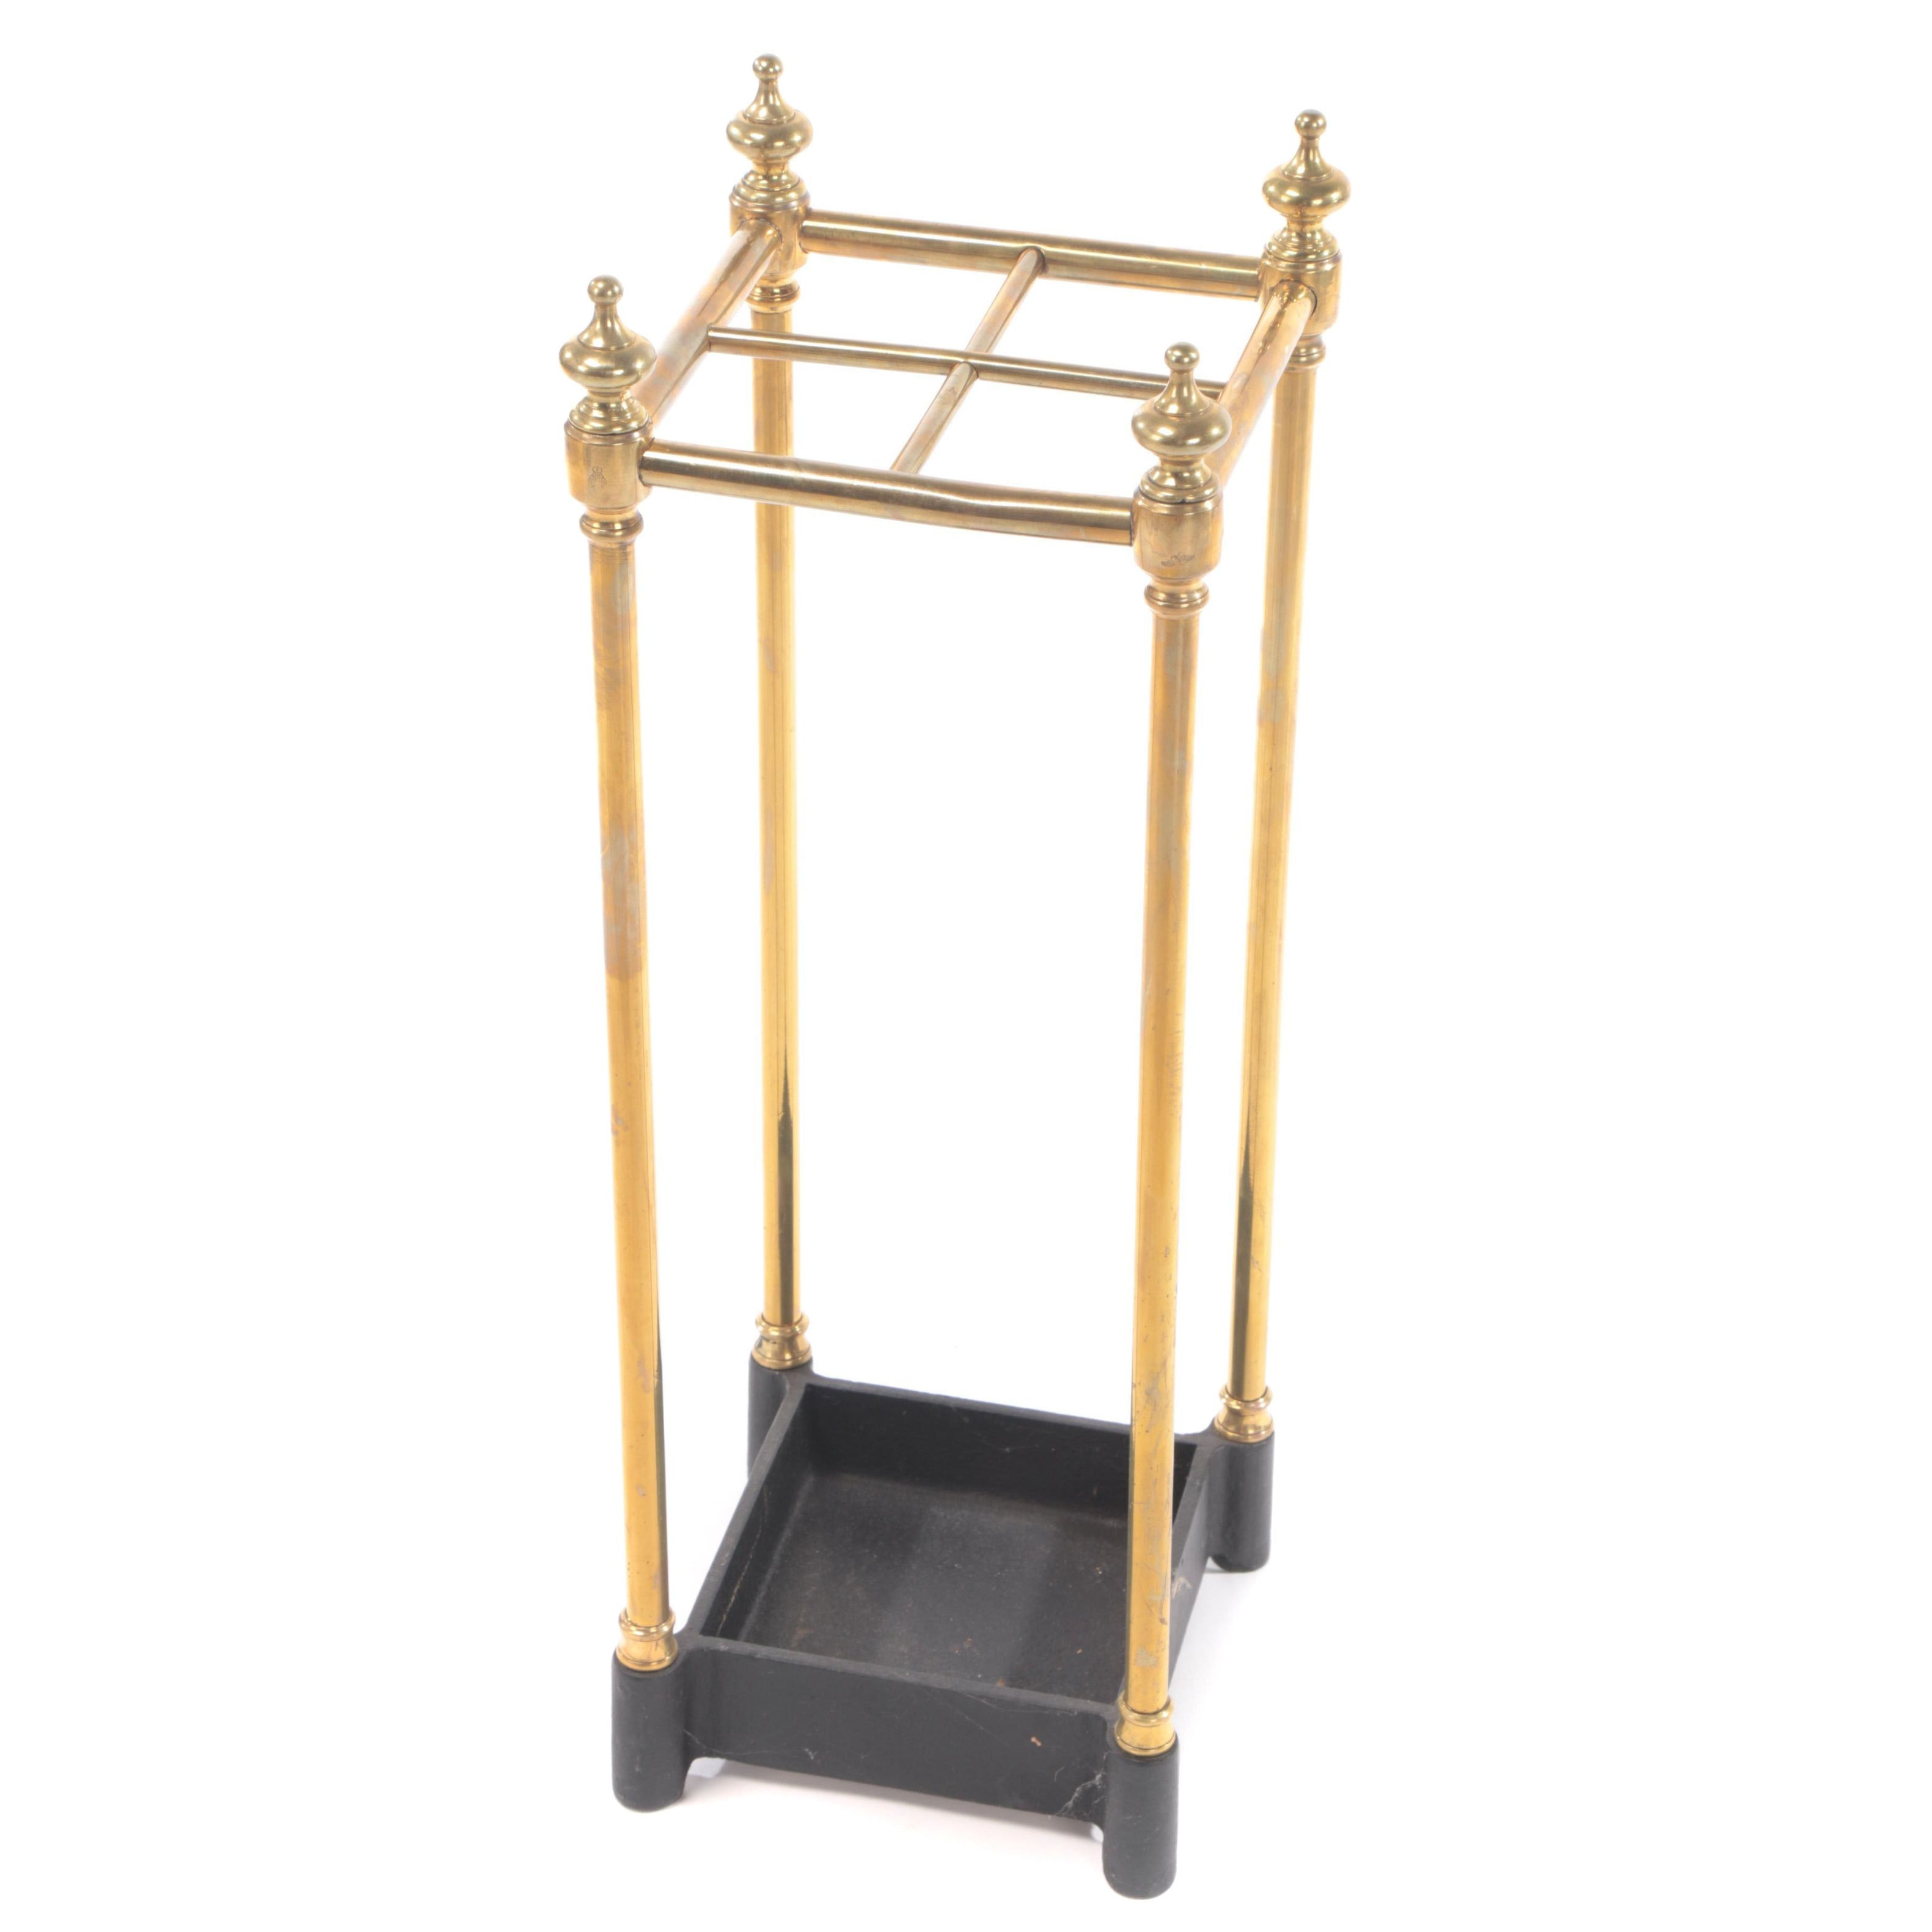 Late Victorian Brass and Cast Iron Stick Stand, Late 19th/Early 20th Century